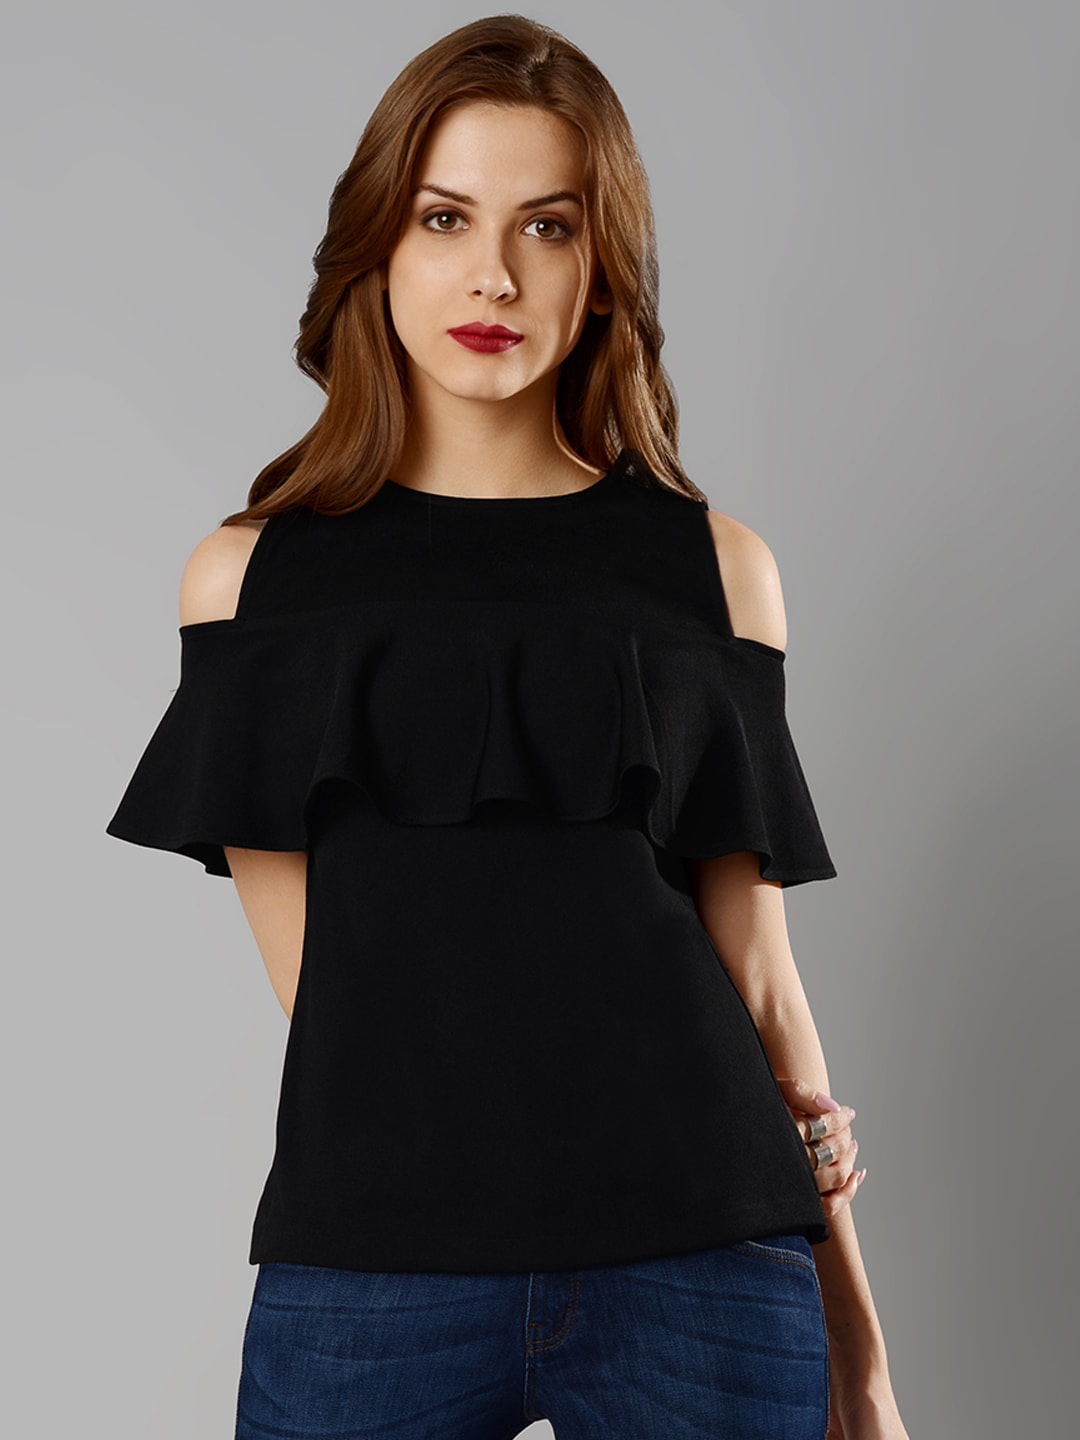 0be84c9f7bb2cb FabAlley Top - Buy FabAlley Tops Online in India